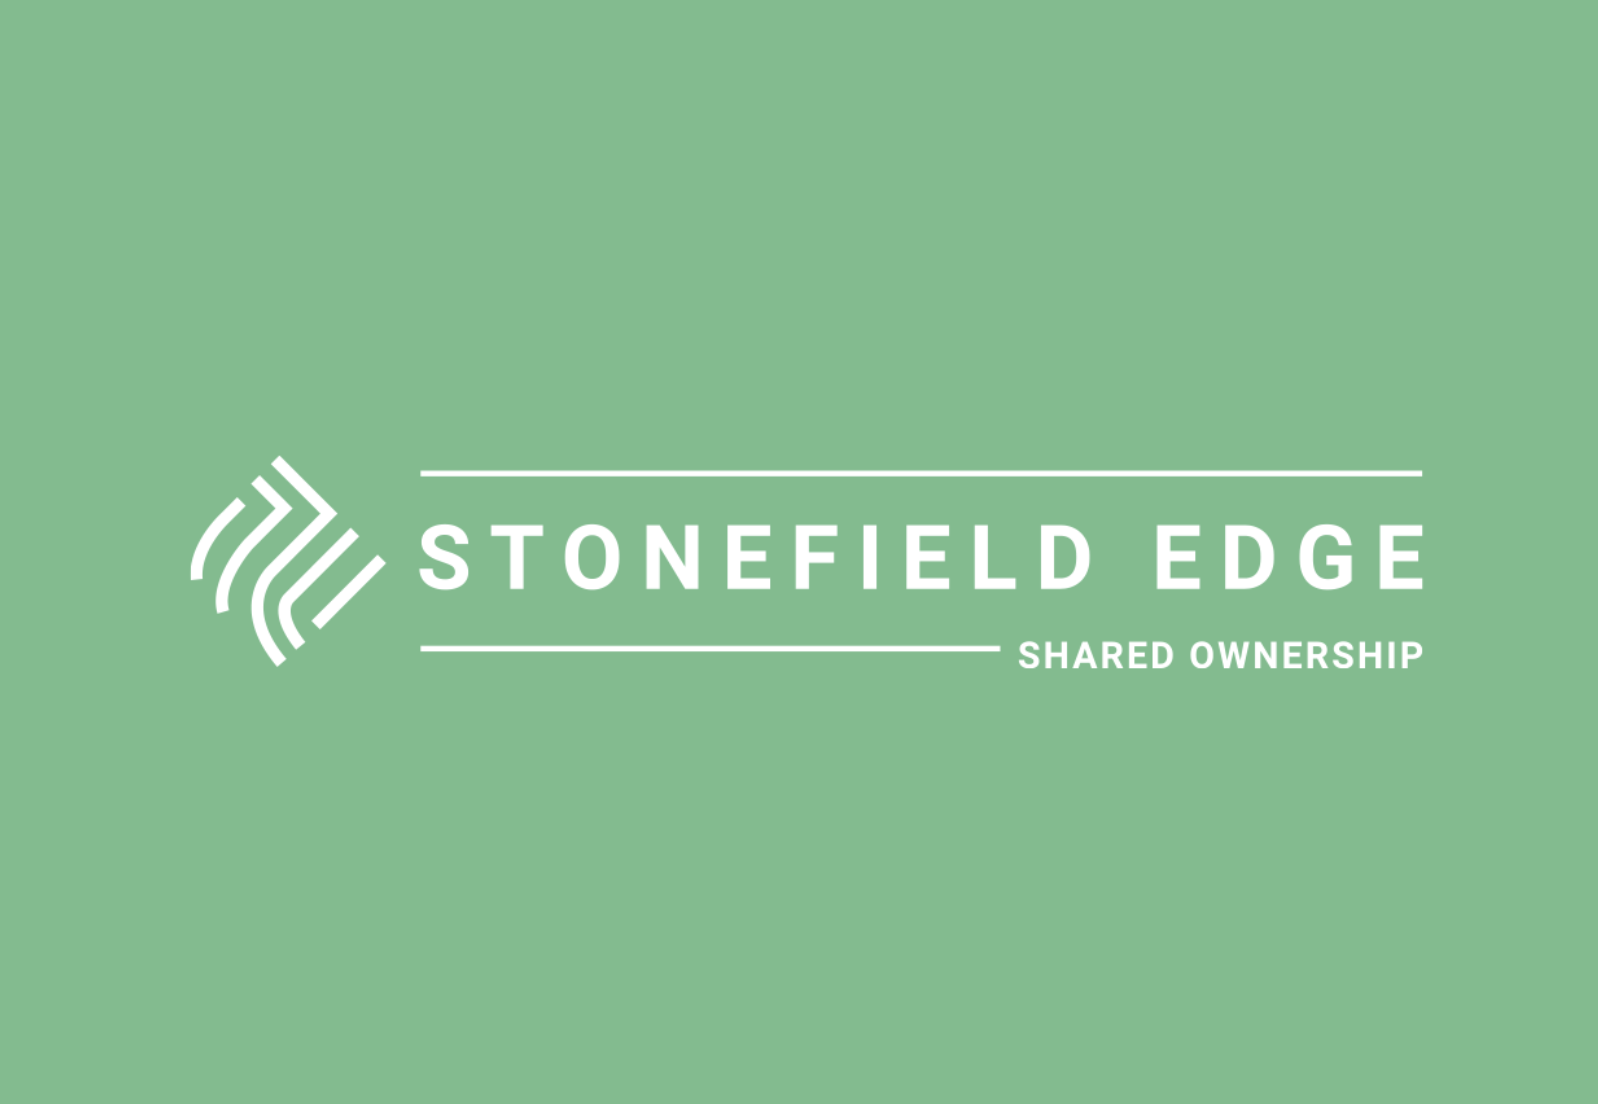 Stonefield Edge Brochure Design Case Study by The Agency Creative